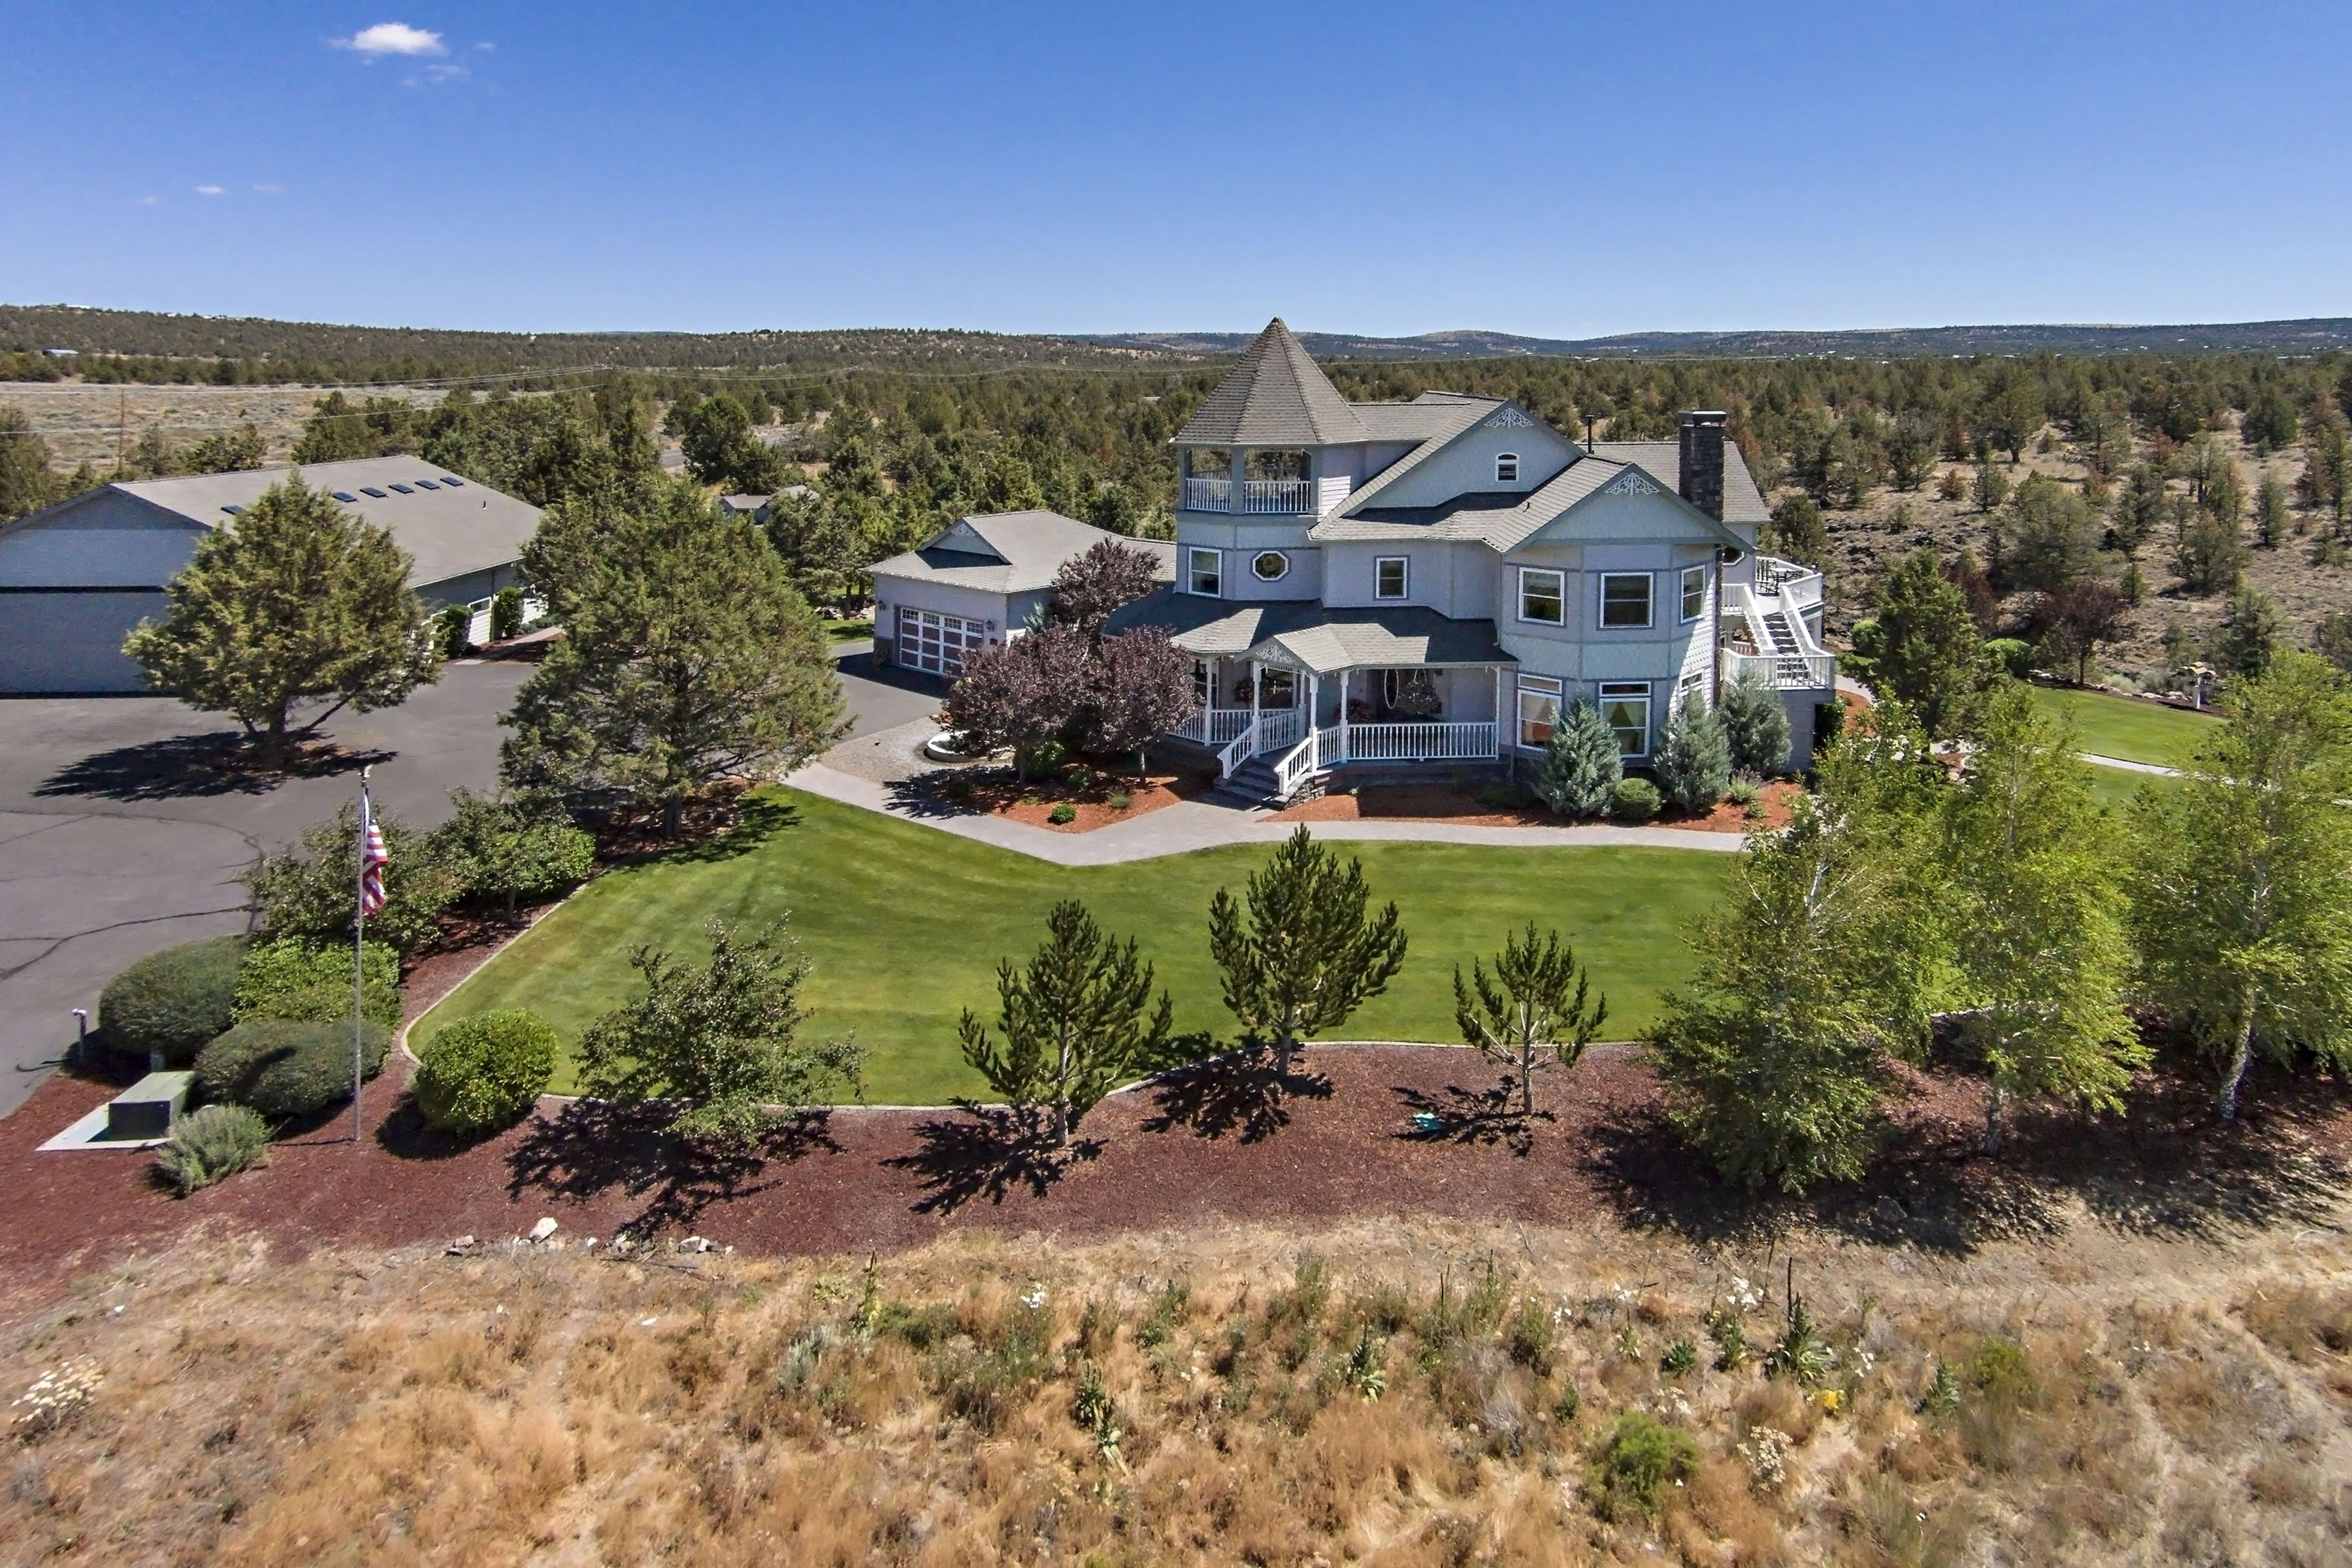 Single Family Home for Sale at Dry Creek Airpark 3194 SE Pilot Dr Prineville, Oregon 97754 United States